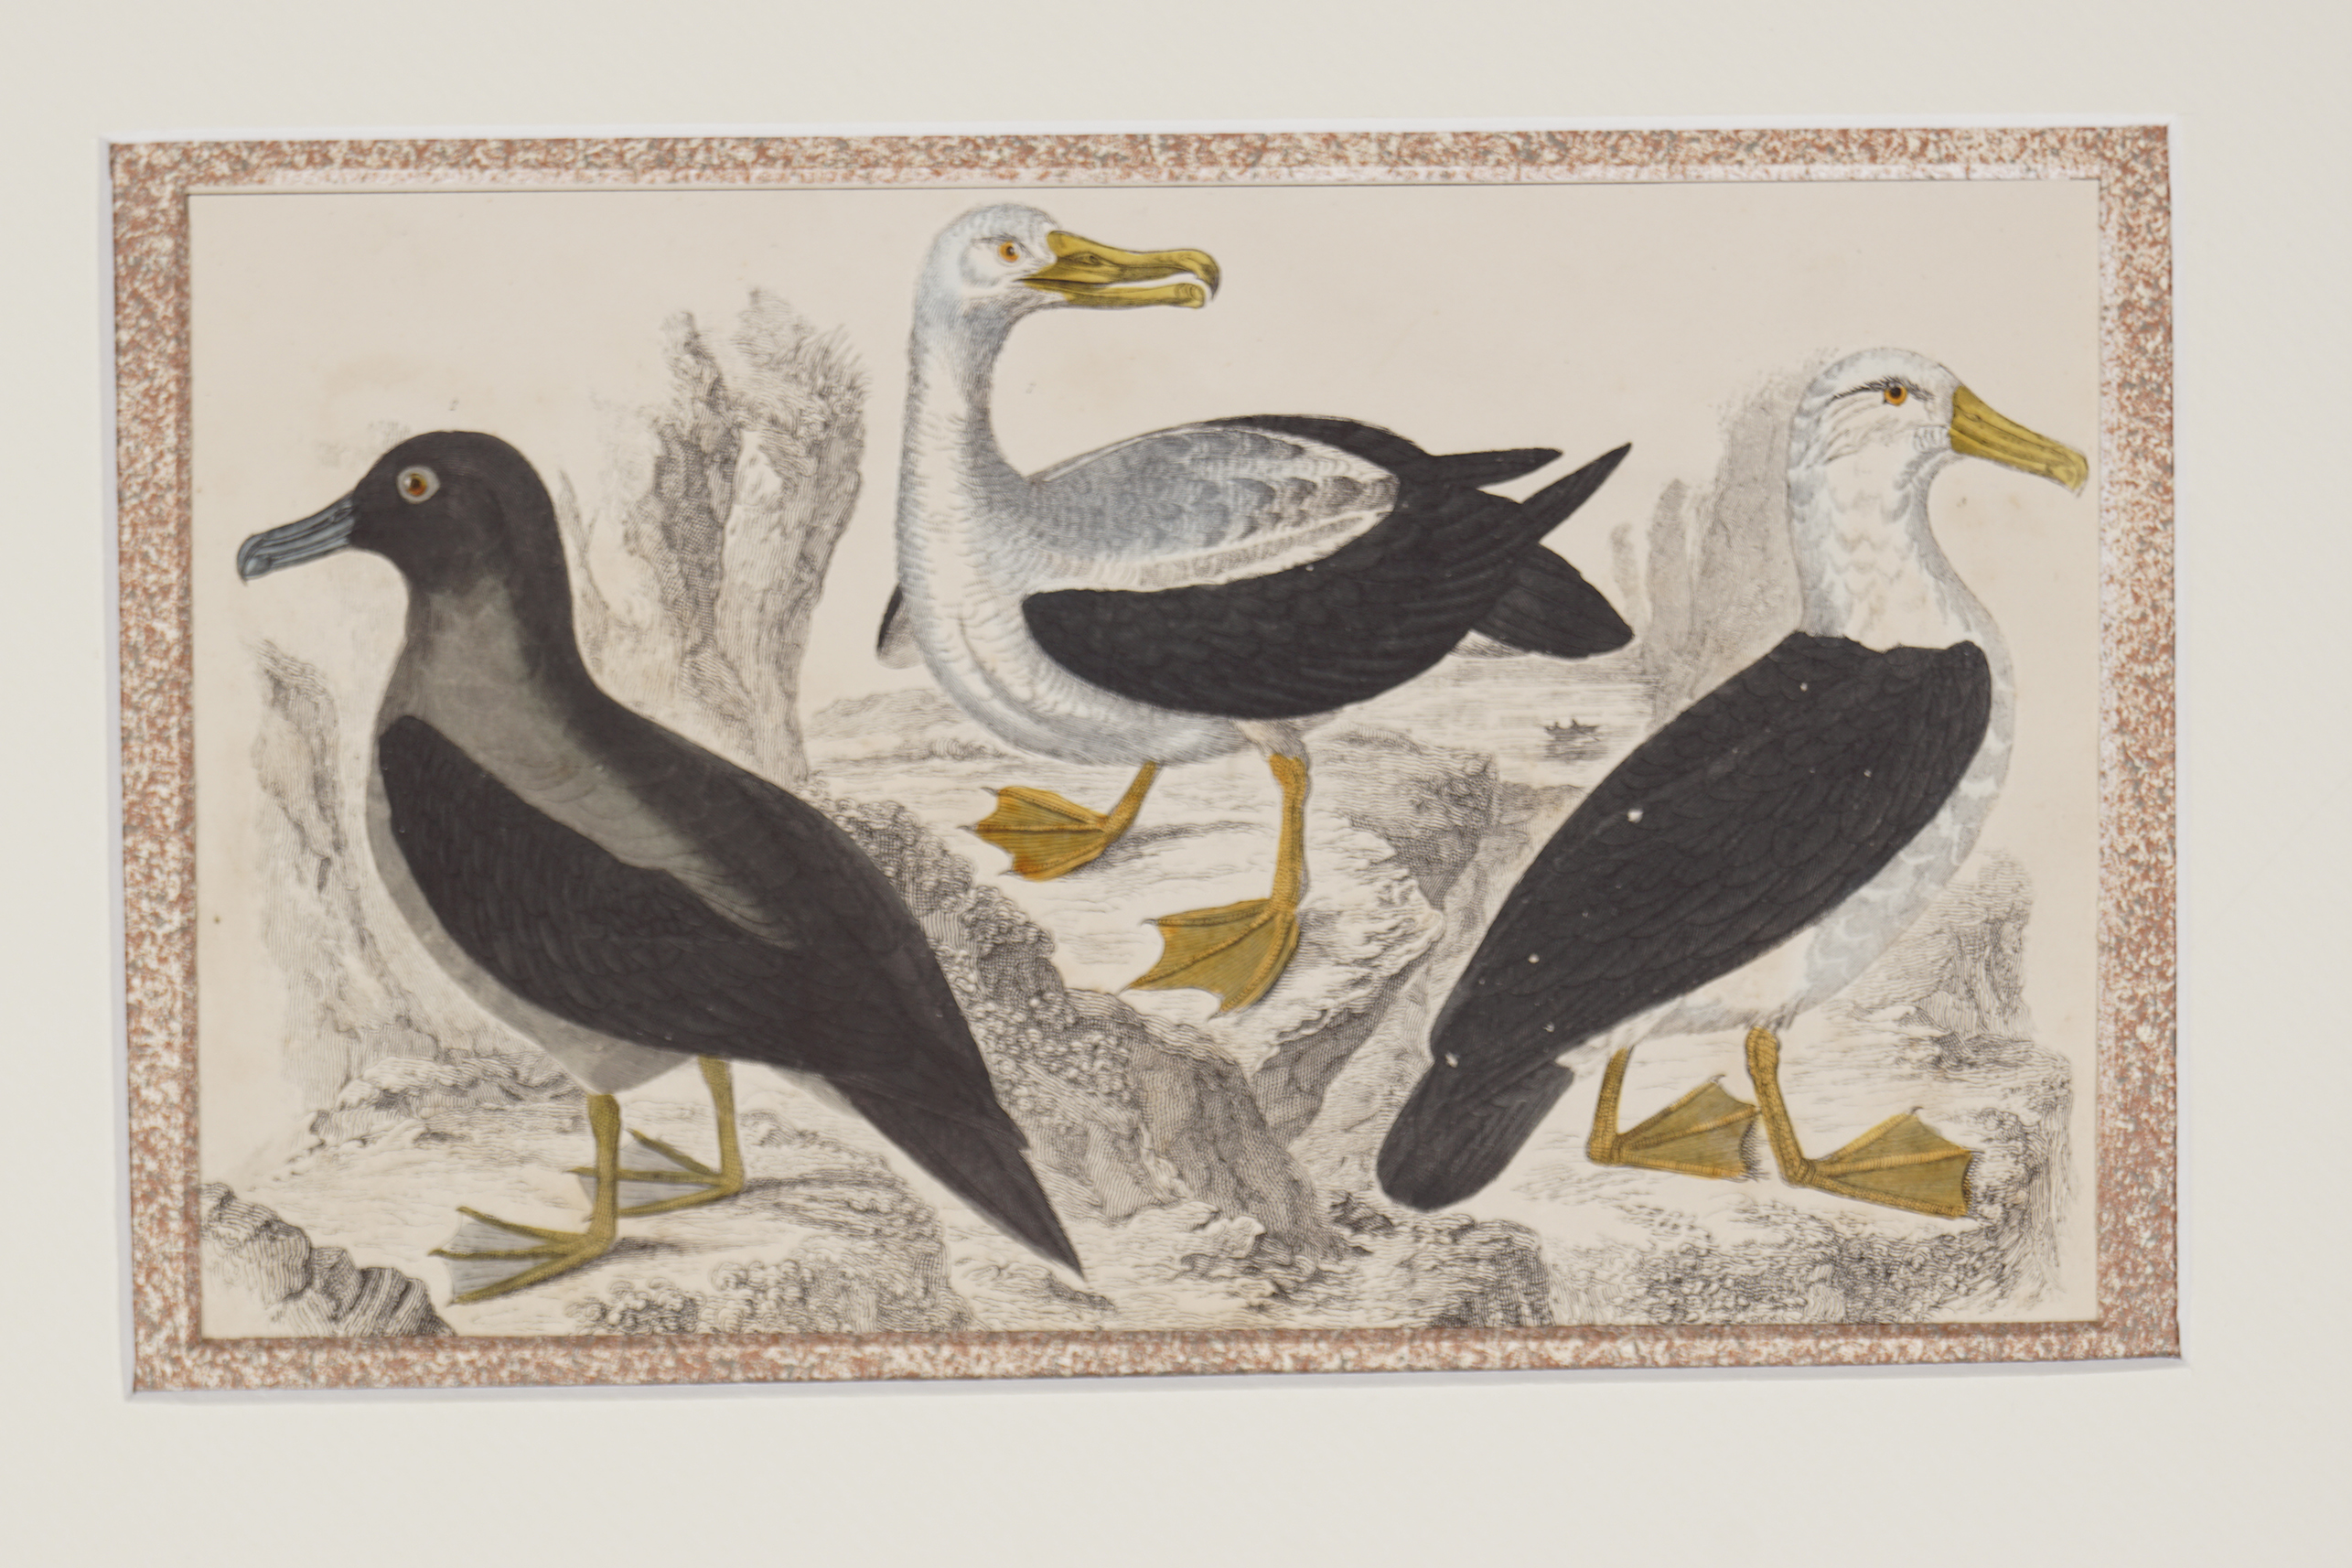 SET OF 4 18TH-CENTURY HAND COLOURED PRINTS - Image 4 of 5